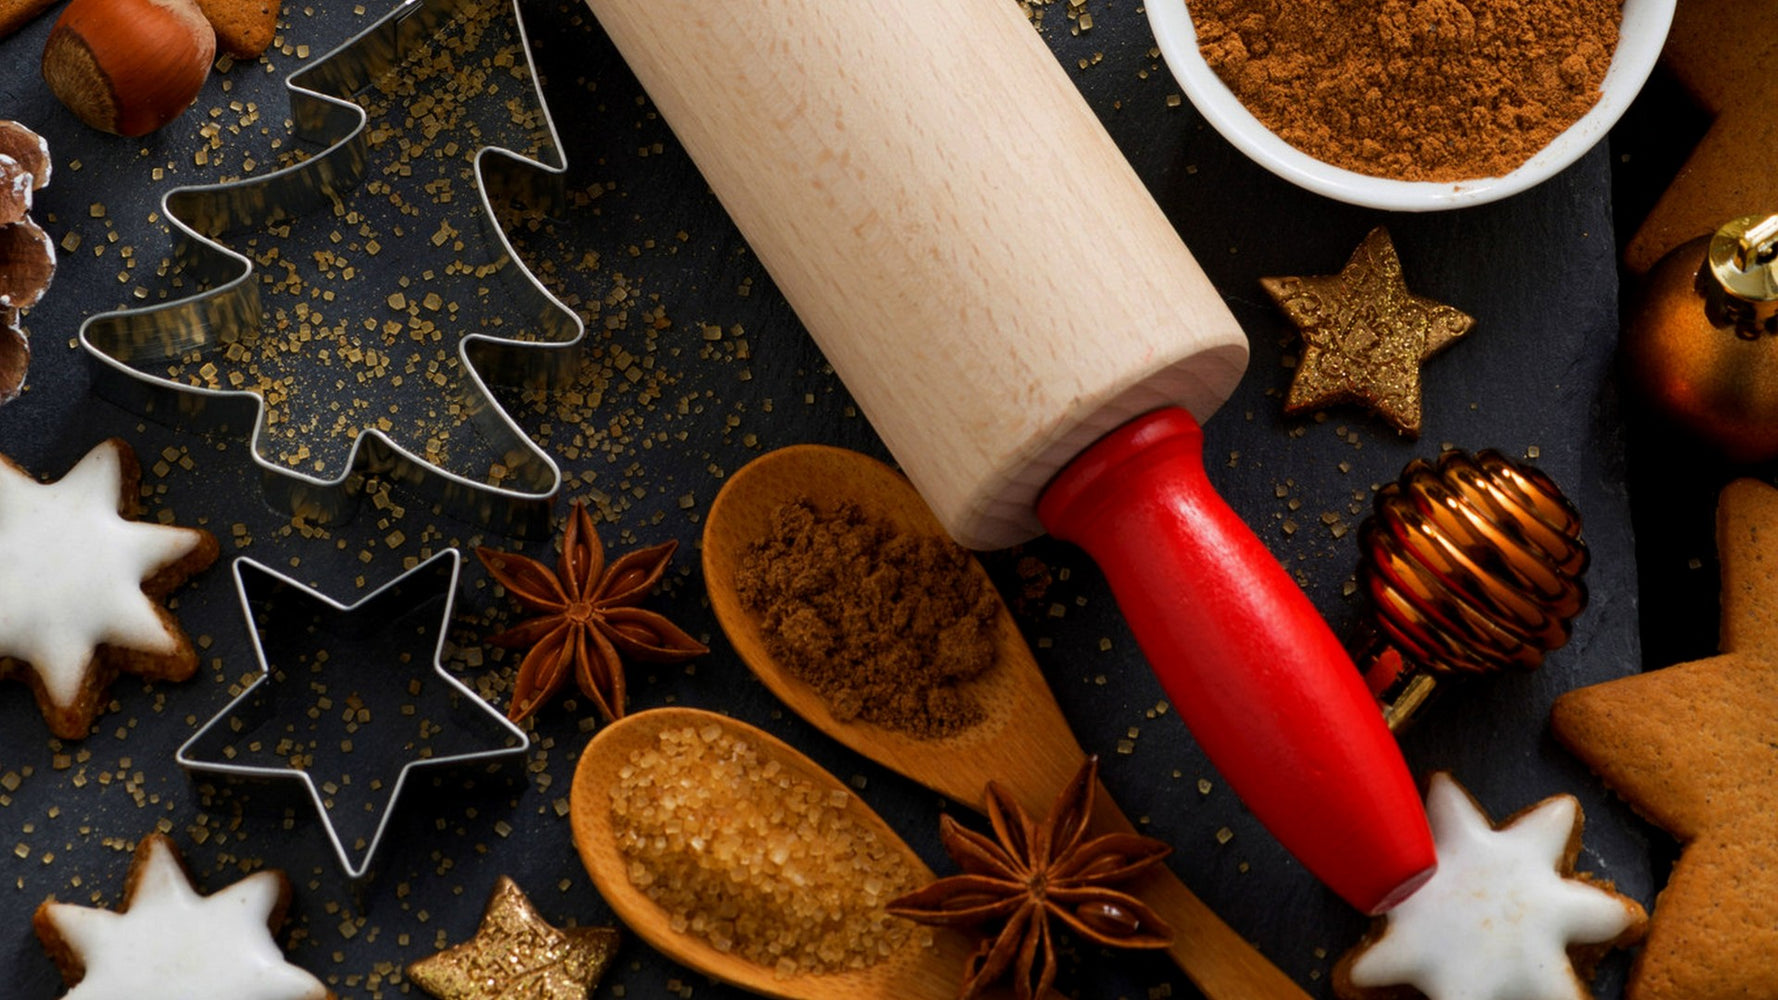 Shop Holiday Edible Glitter, Edible Dusts, Silicone Molds & Cake Tools | Bakell.com